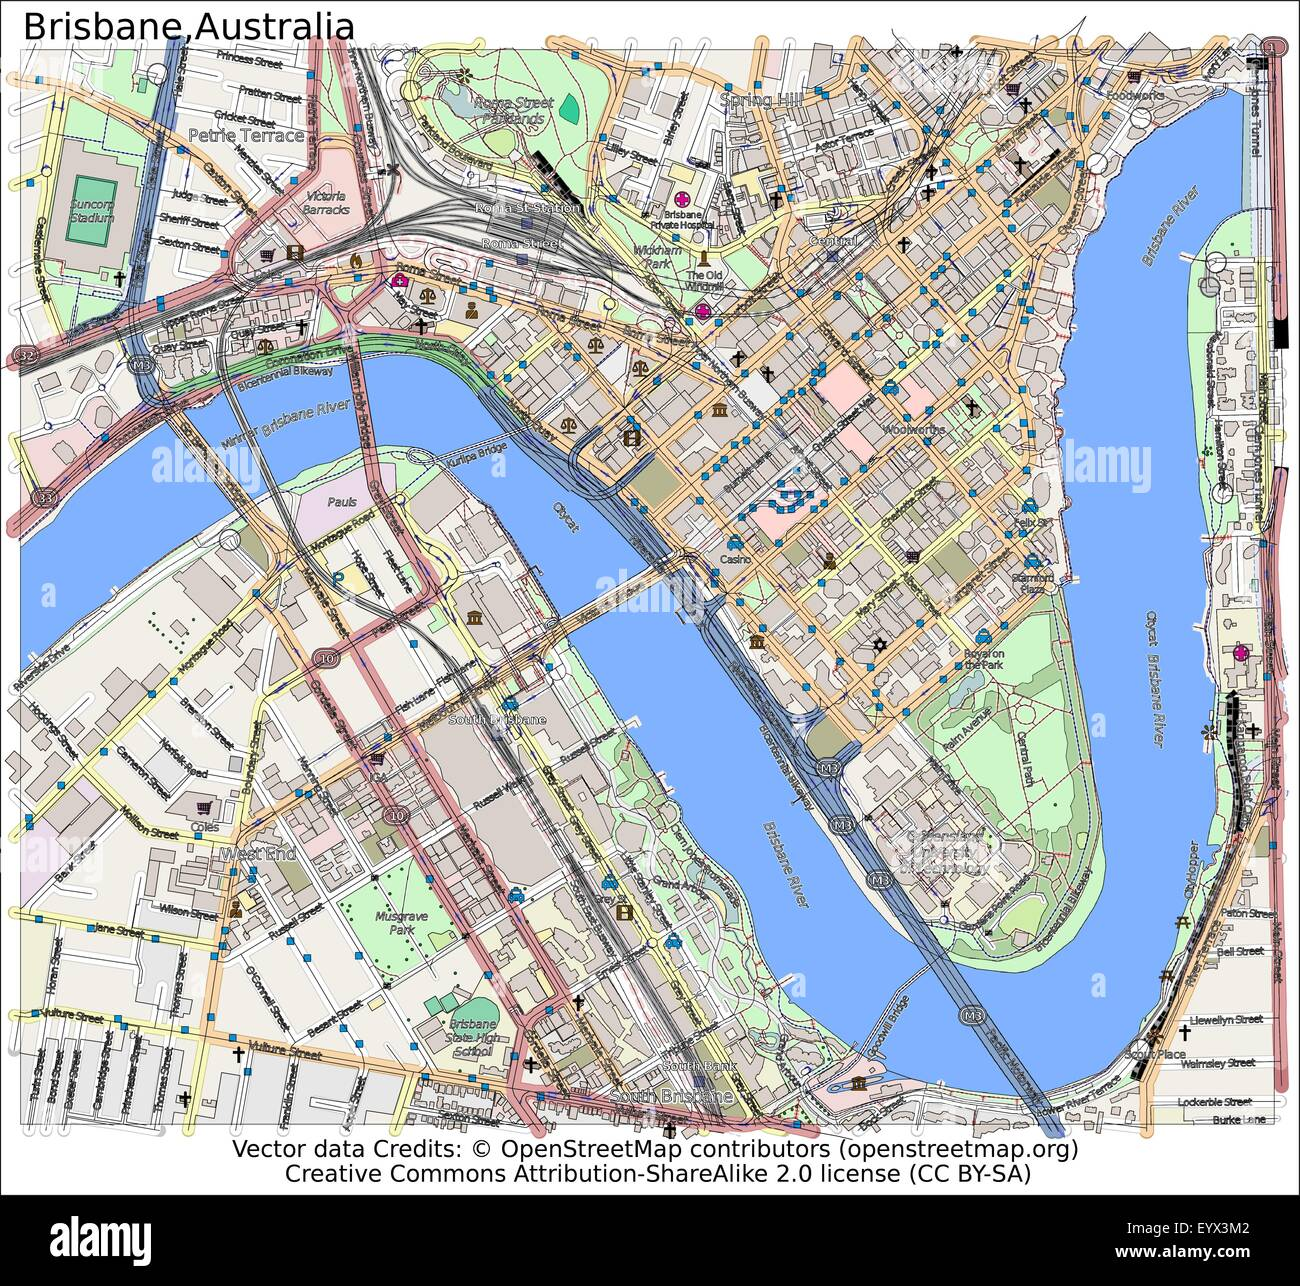 Brisbane Australia Country city island state location map Stock